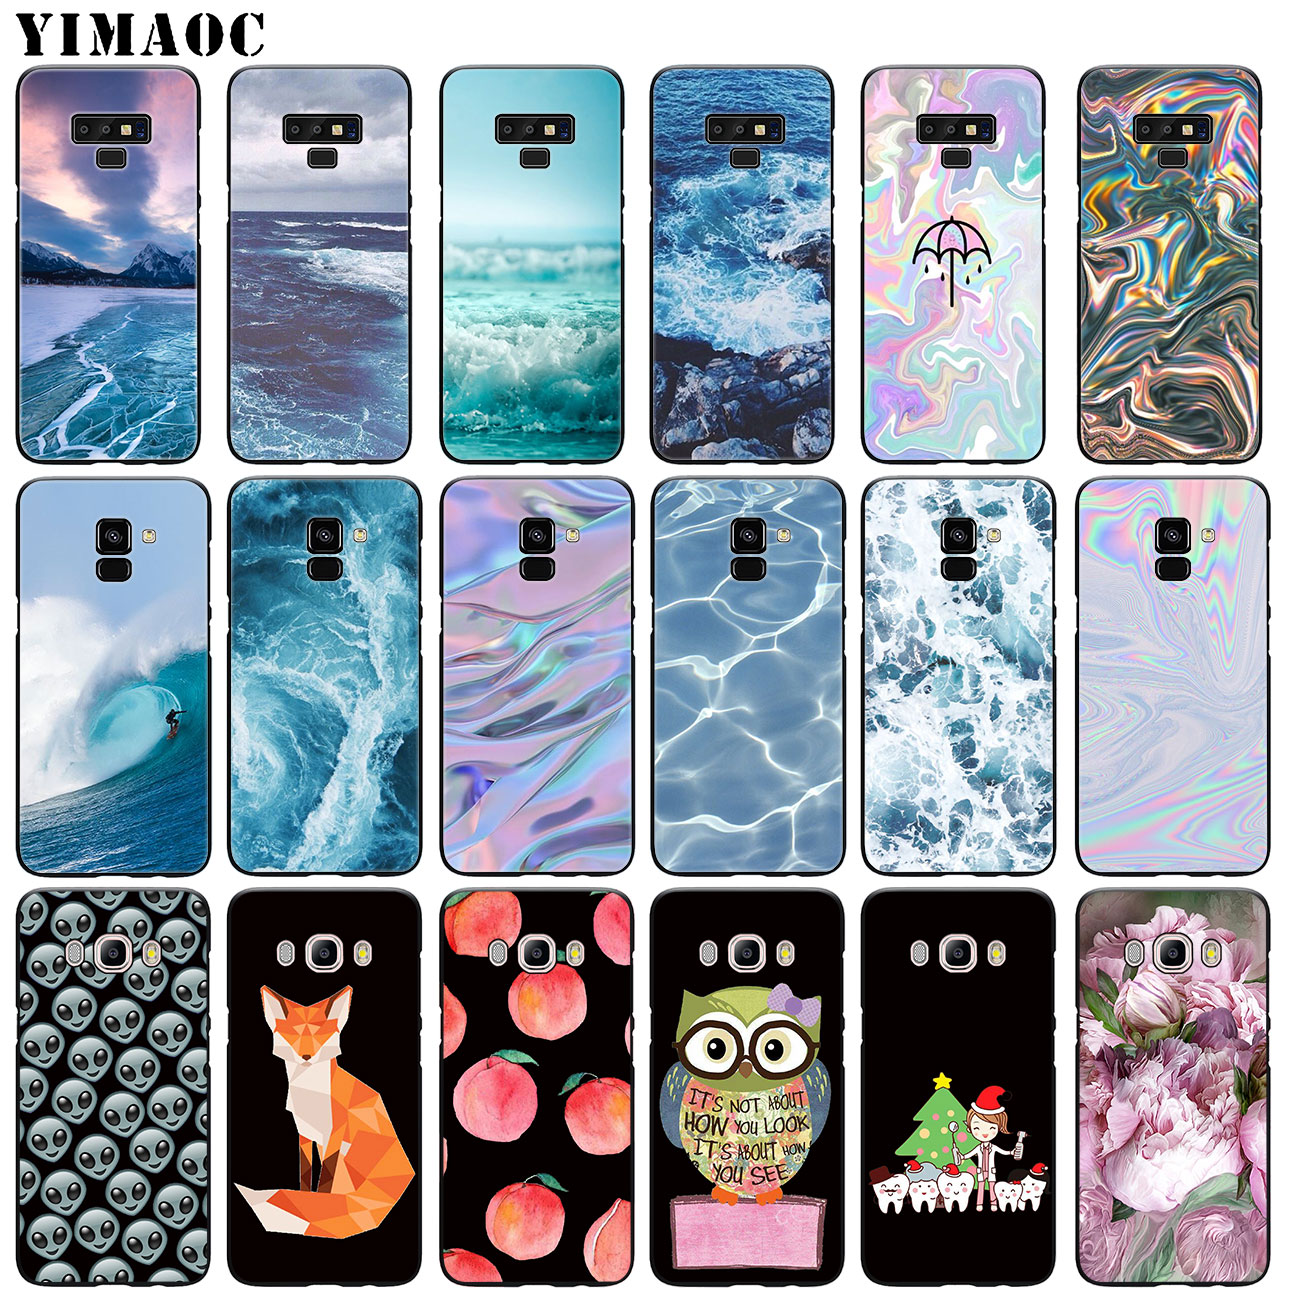 YIMAOC The waves Ocean water Soft Silicone Case for Samsung Galaxy A6 Plus 2018 A3 A5 2016 2017 Black flower Note 9 8 TPU Cover